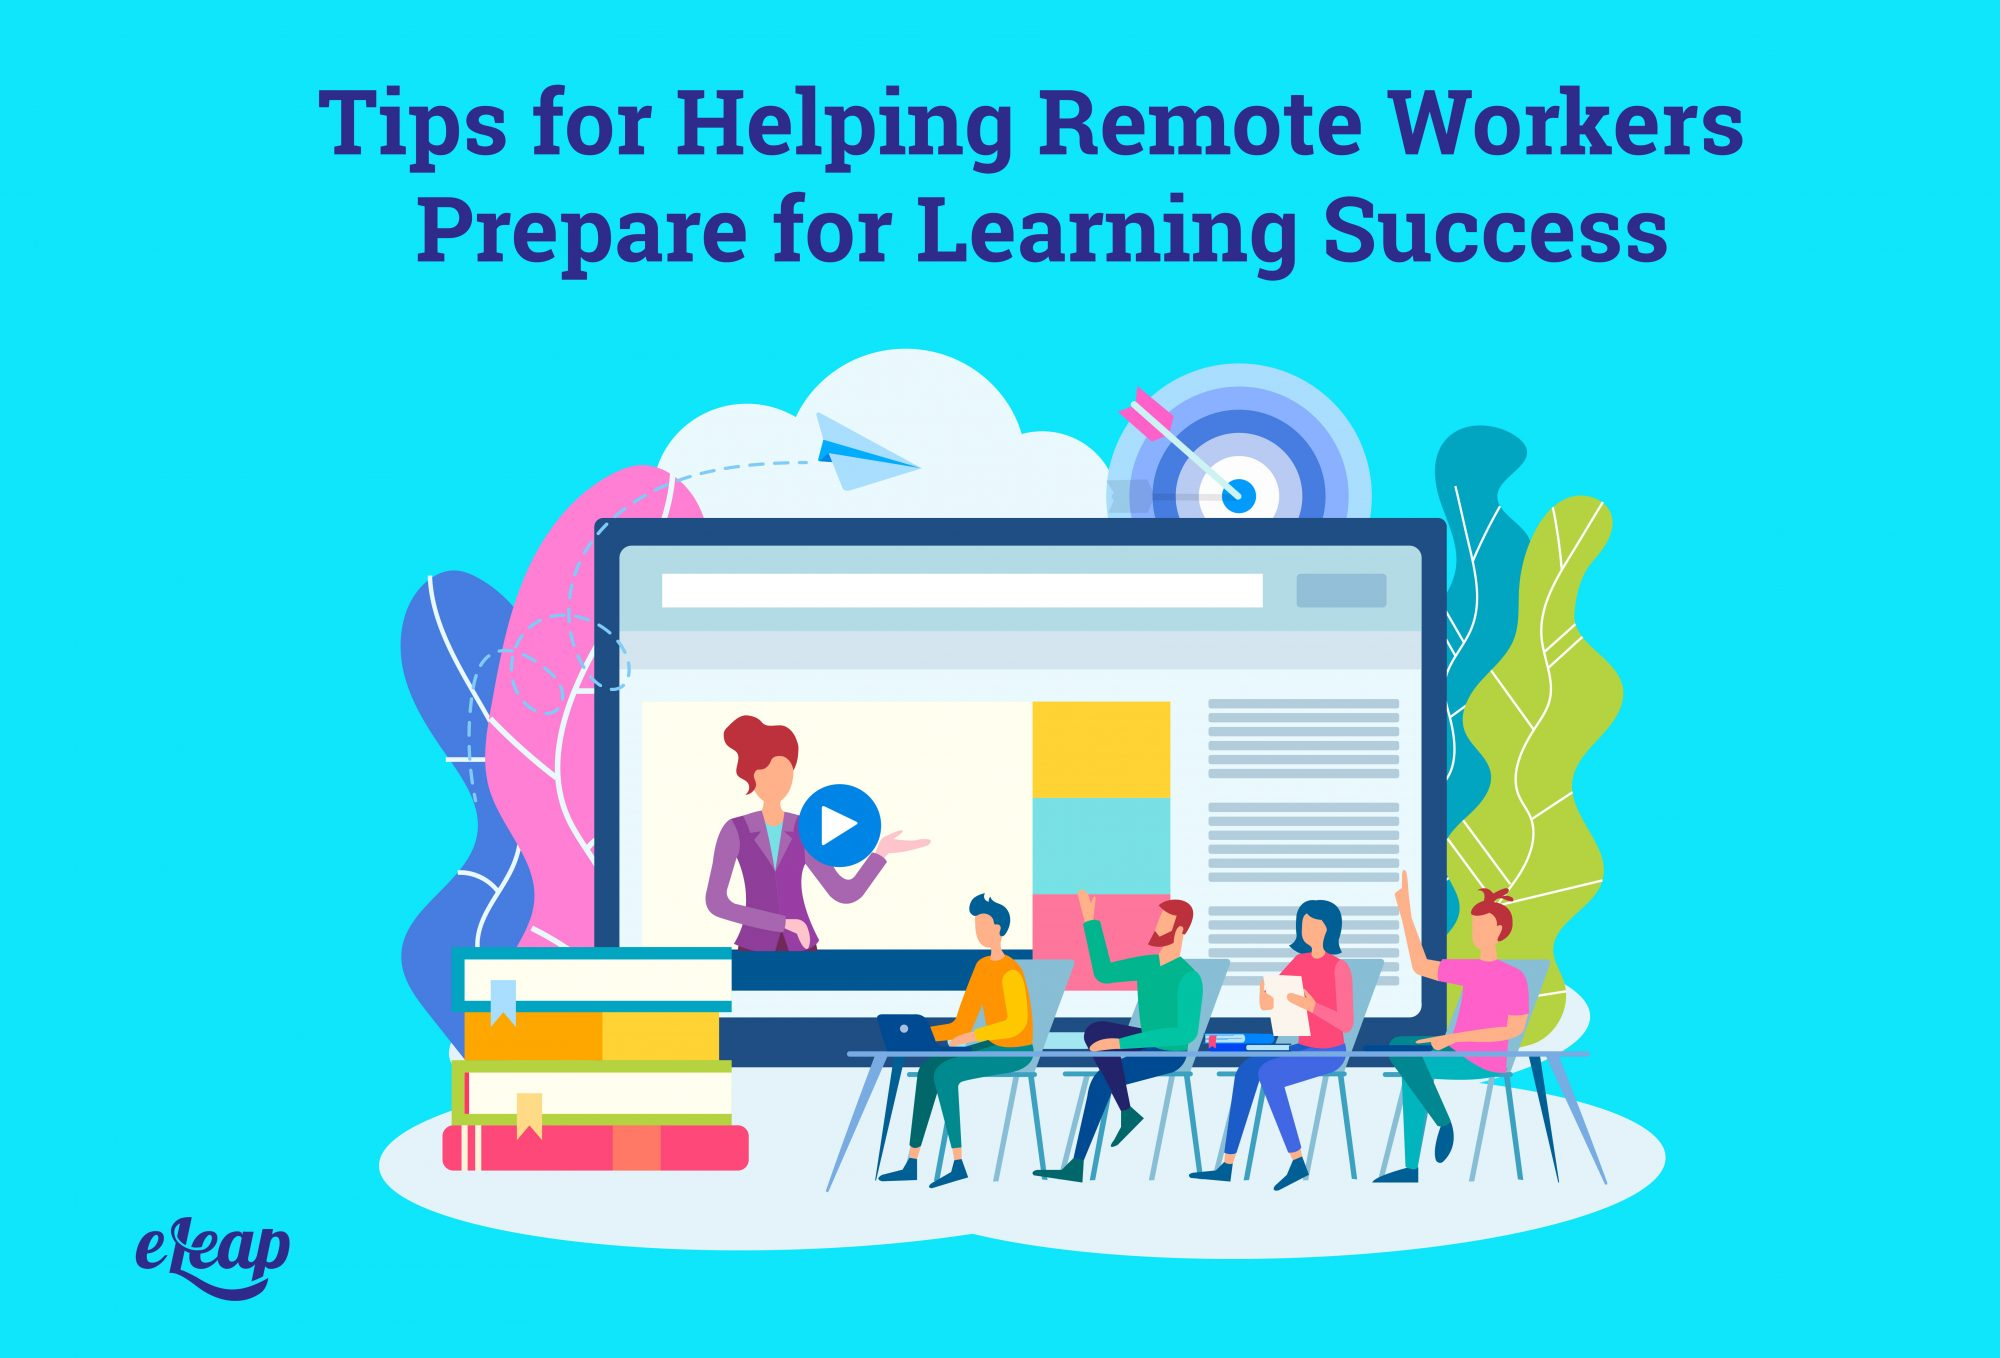 Tips for Helping Remote Workers Prepare for Learning Success